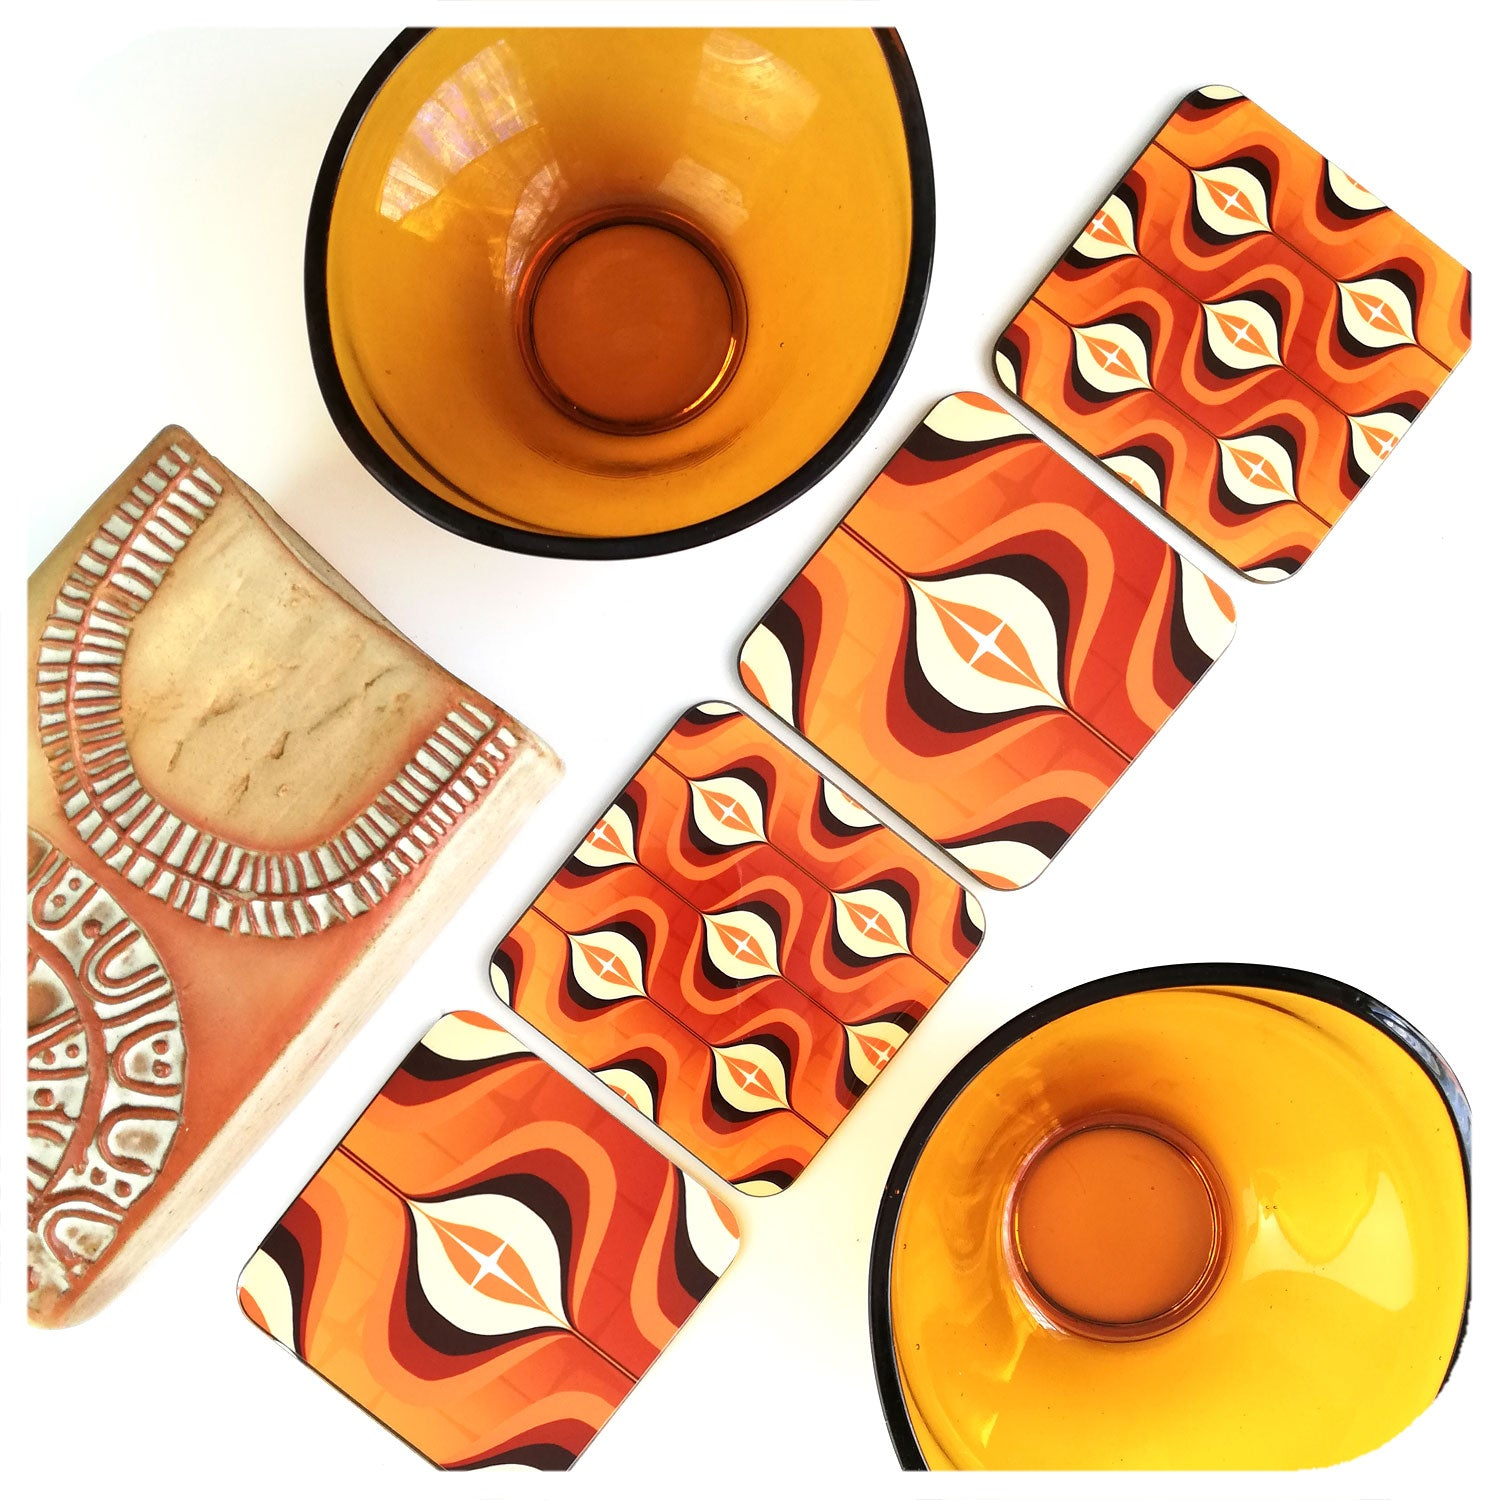 Orange Op Art Coasters with mid century bowls and vase | The Inkabilly Emporium